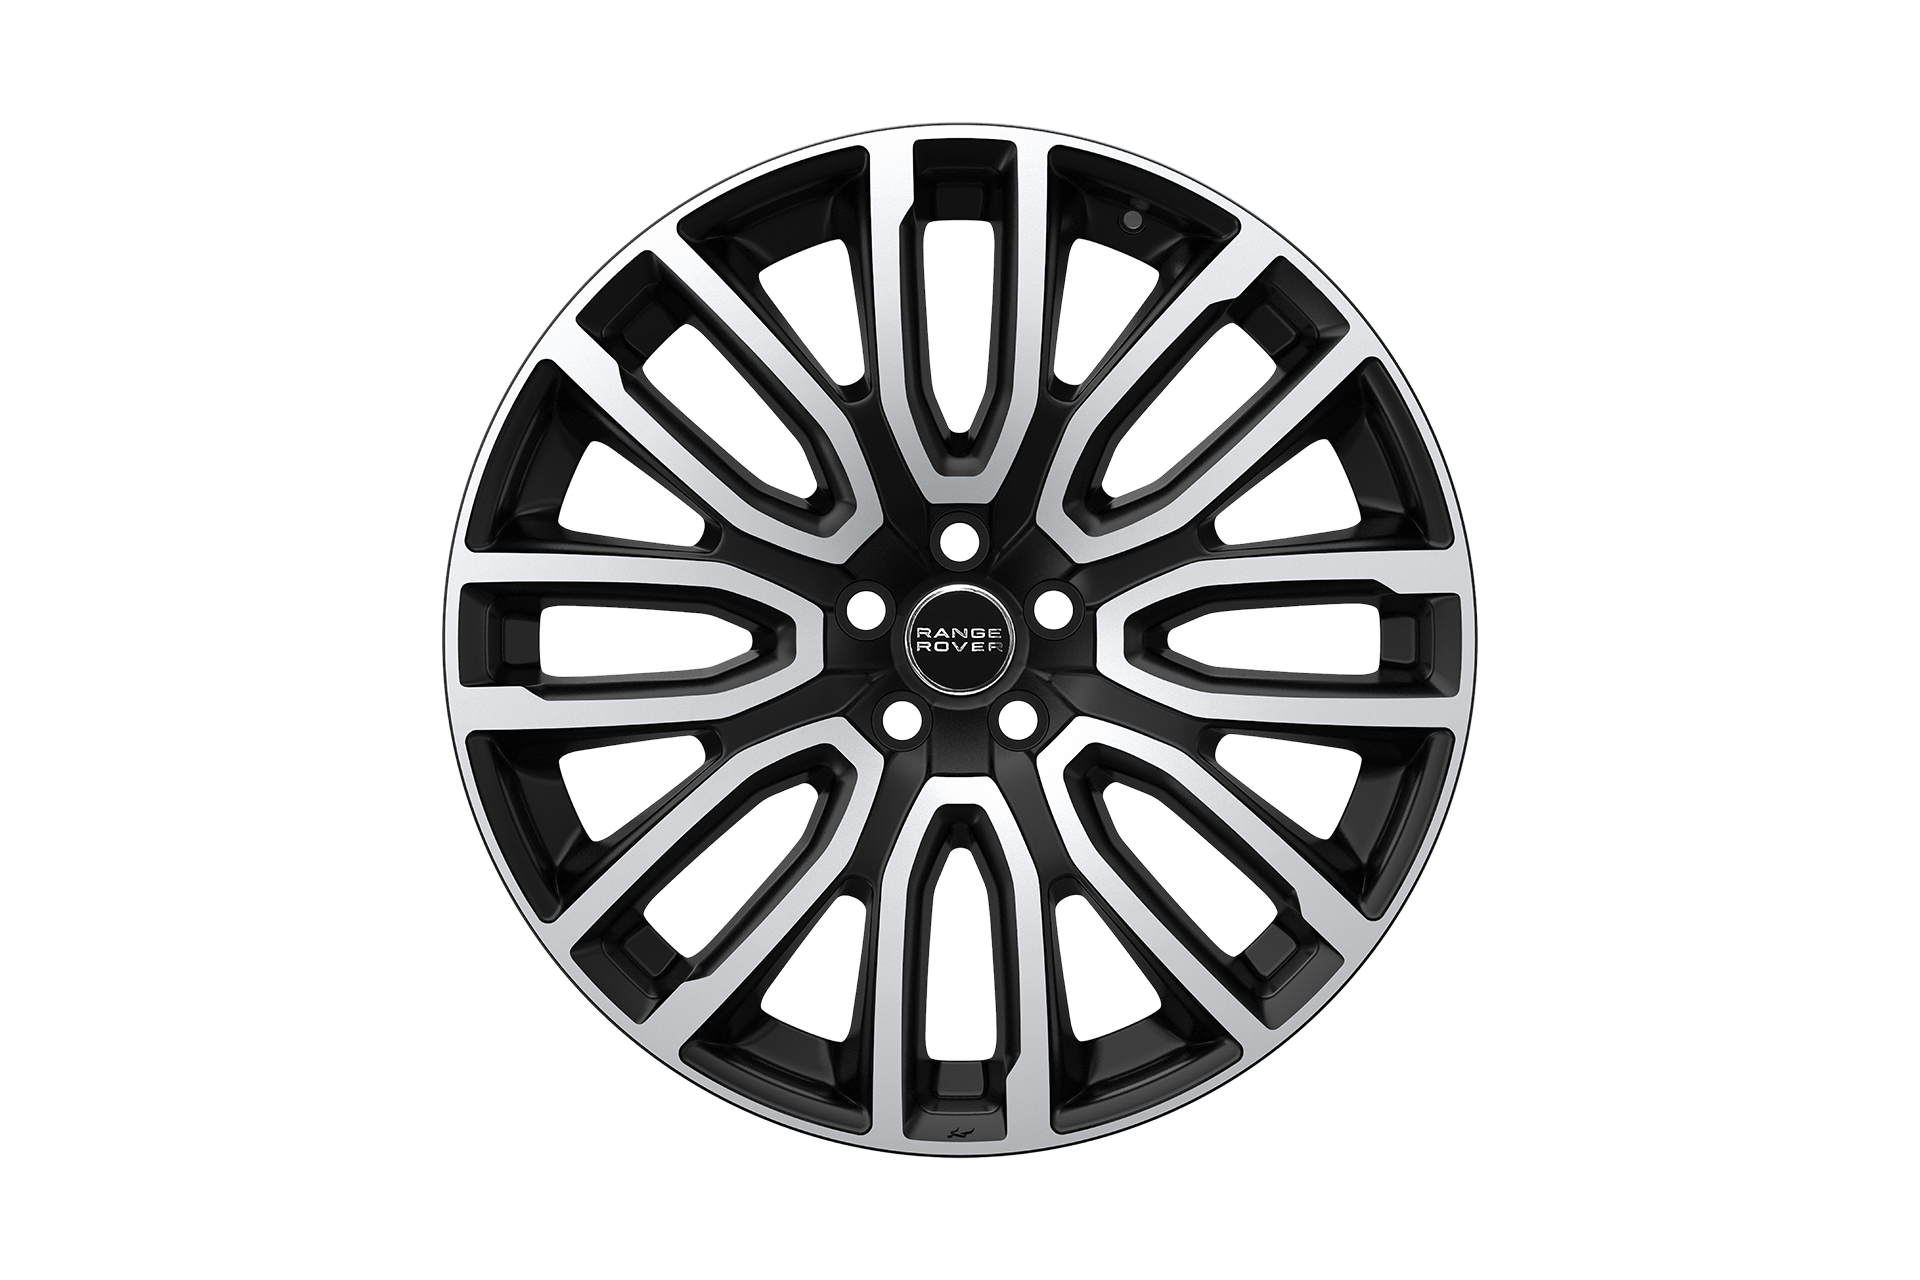 Range Rover (2018-Present) Pace Car Light Alloy Wheels by Kahn - Image 2622